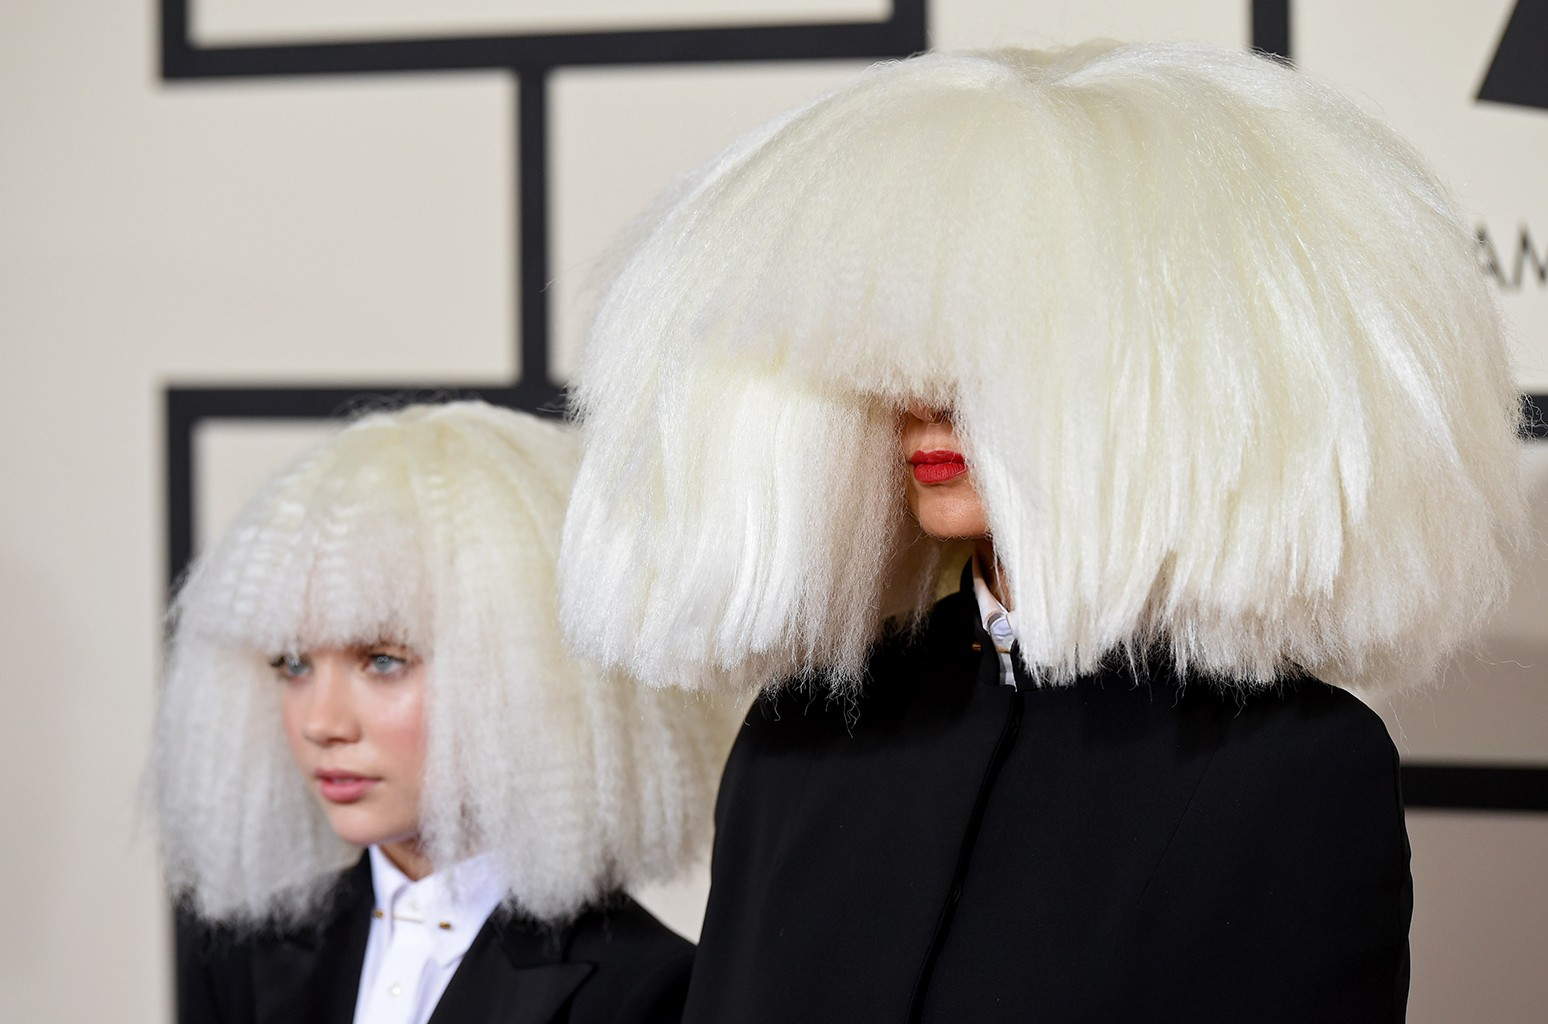 Maddie Ziegler and Sia arrive at the 57th Annual Grammy Awards at Staples Center on Feb. 8, 2015 in Los Angeles.